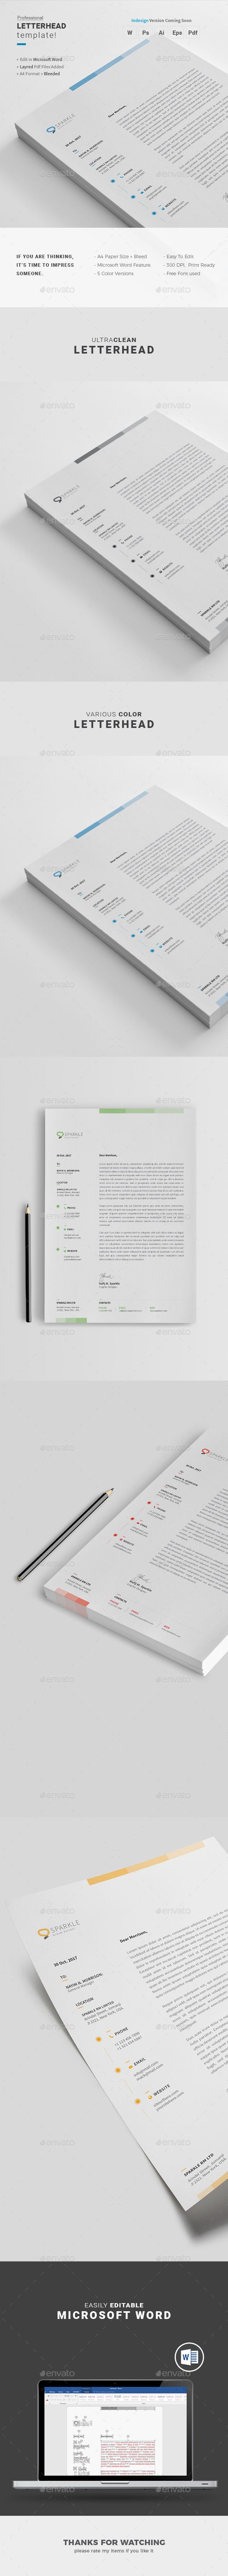 Letterhead template psd vector eps ai ms word letterhead design letterhead template psd vector eps ai ms word letterhead design templates pinterest stationery printing print templates and letterhead template spiritdancerdesigns Image collections